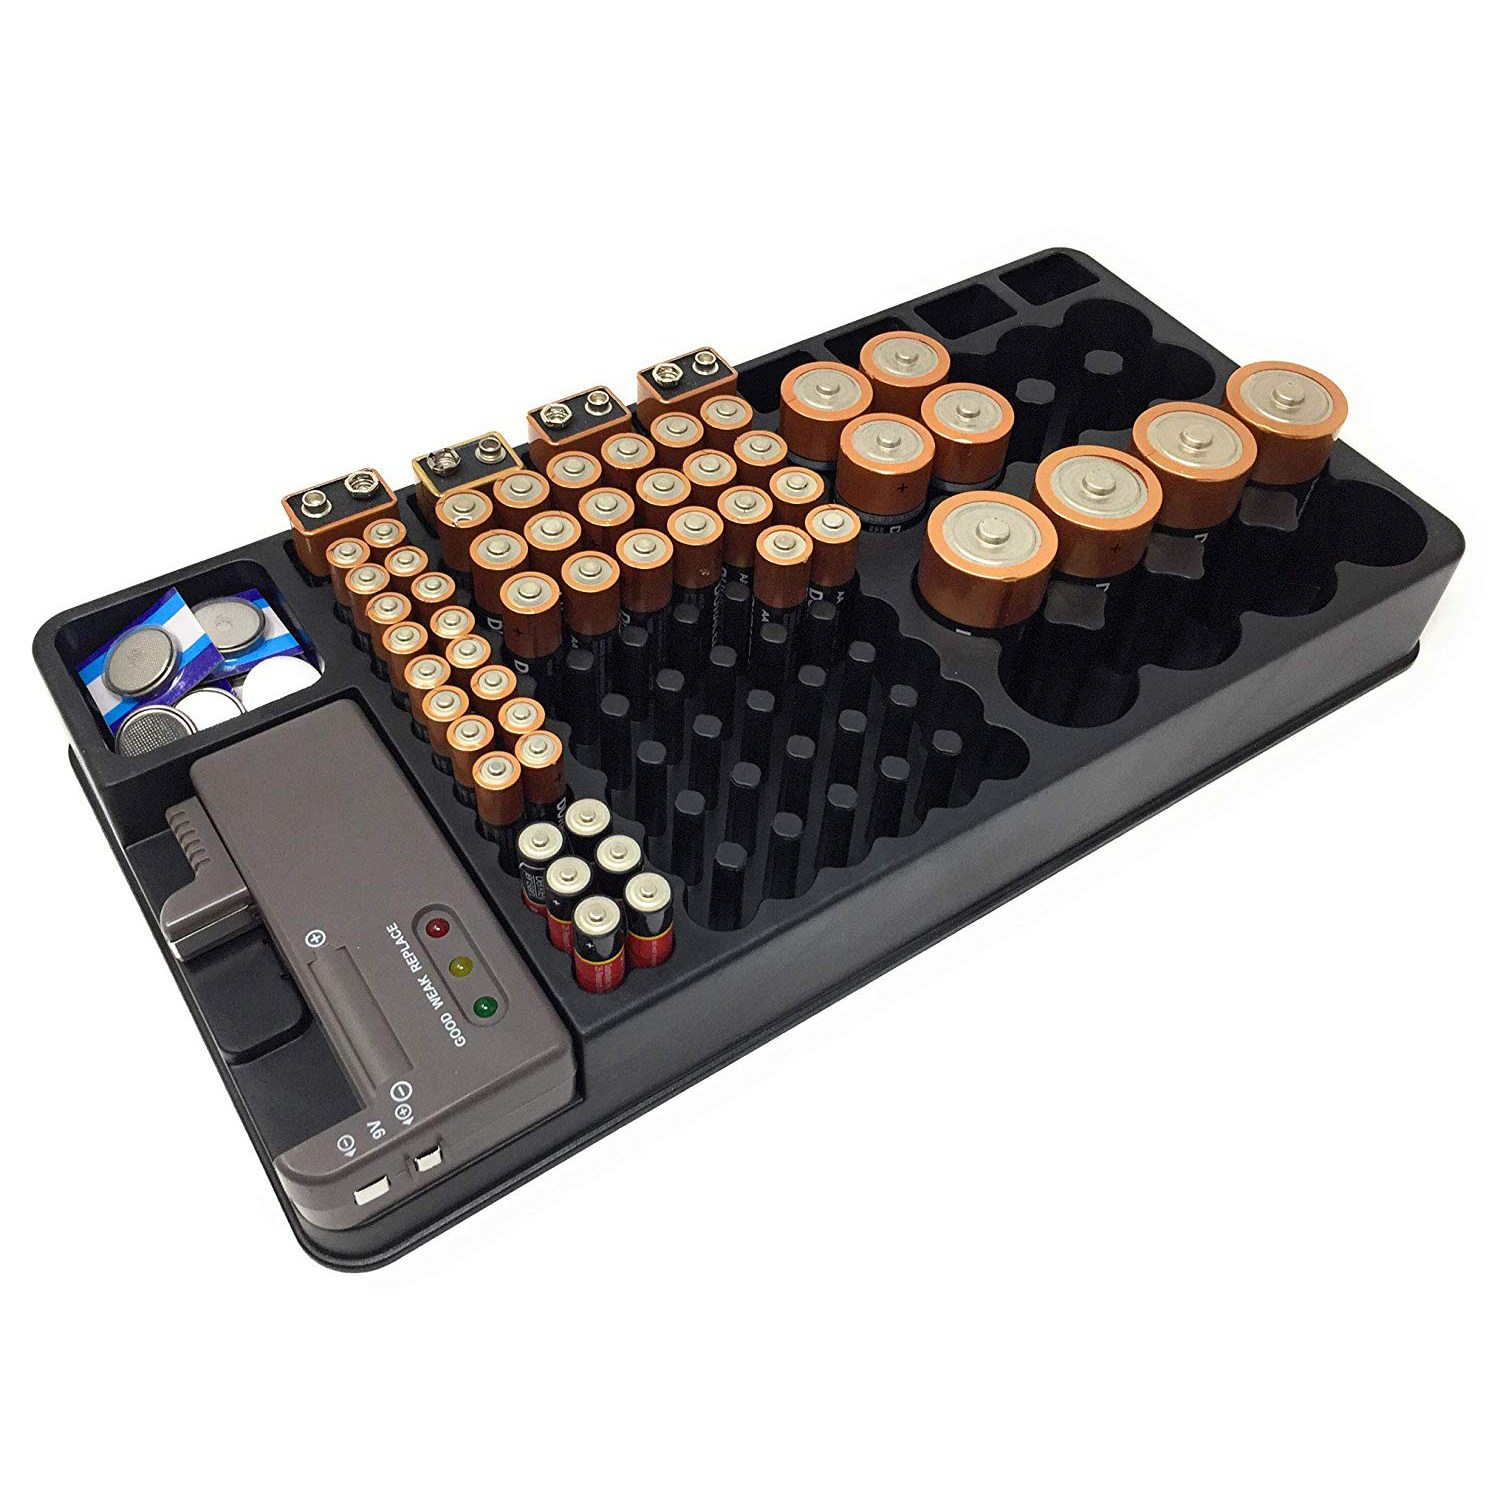 HFES Battery Storage Organizer Holder w/Tester Battery Caddy Rack Case Box Holders Including Battery Checker For AAA AA C D 9V